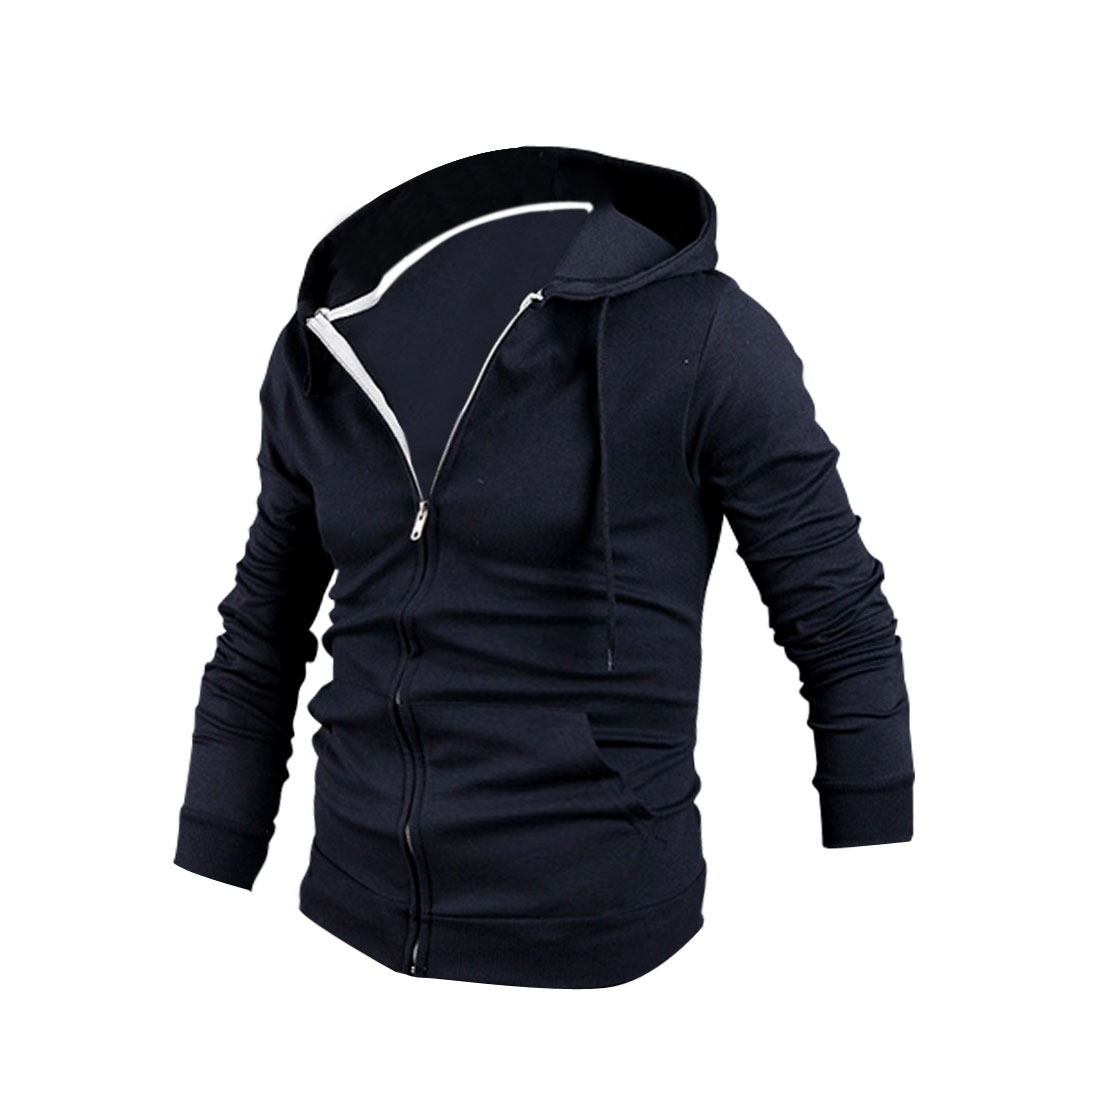 Men Long Sleeve Autumn Wearing Stretchy Hoodies Navy Blue M